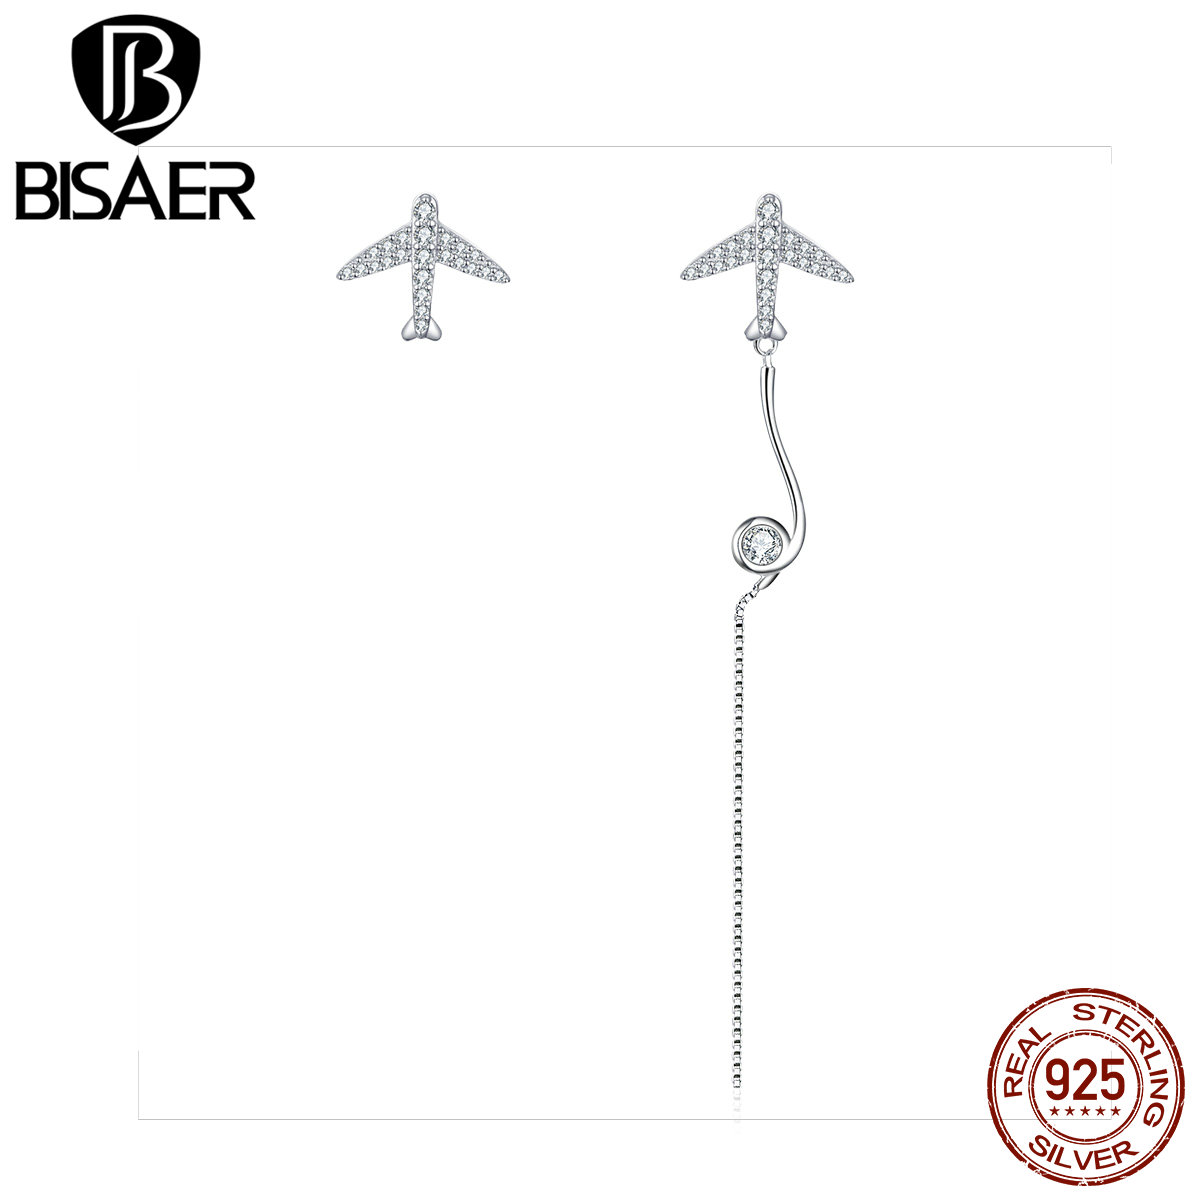 BISAER Asymmetric Earrings 925 Sterling Silver Airplane Earrings For Women Party Holiday Daliy Earrings Fashion Jewelry GAE142 image